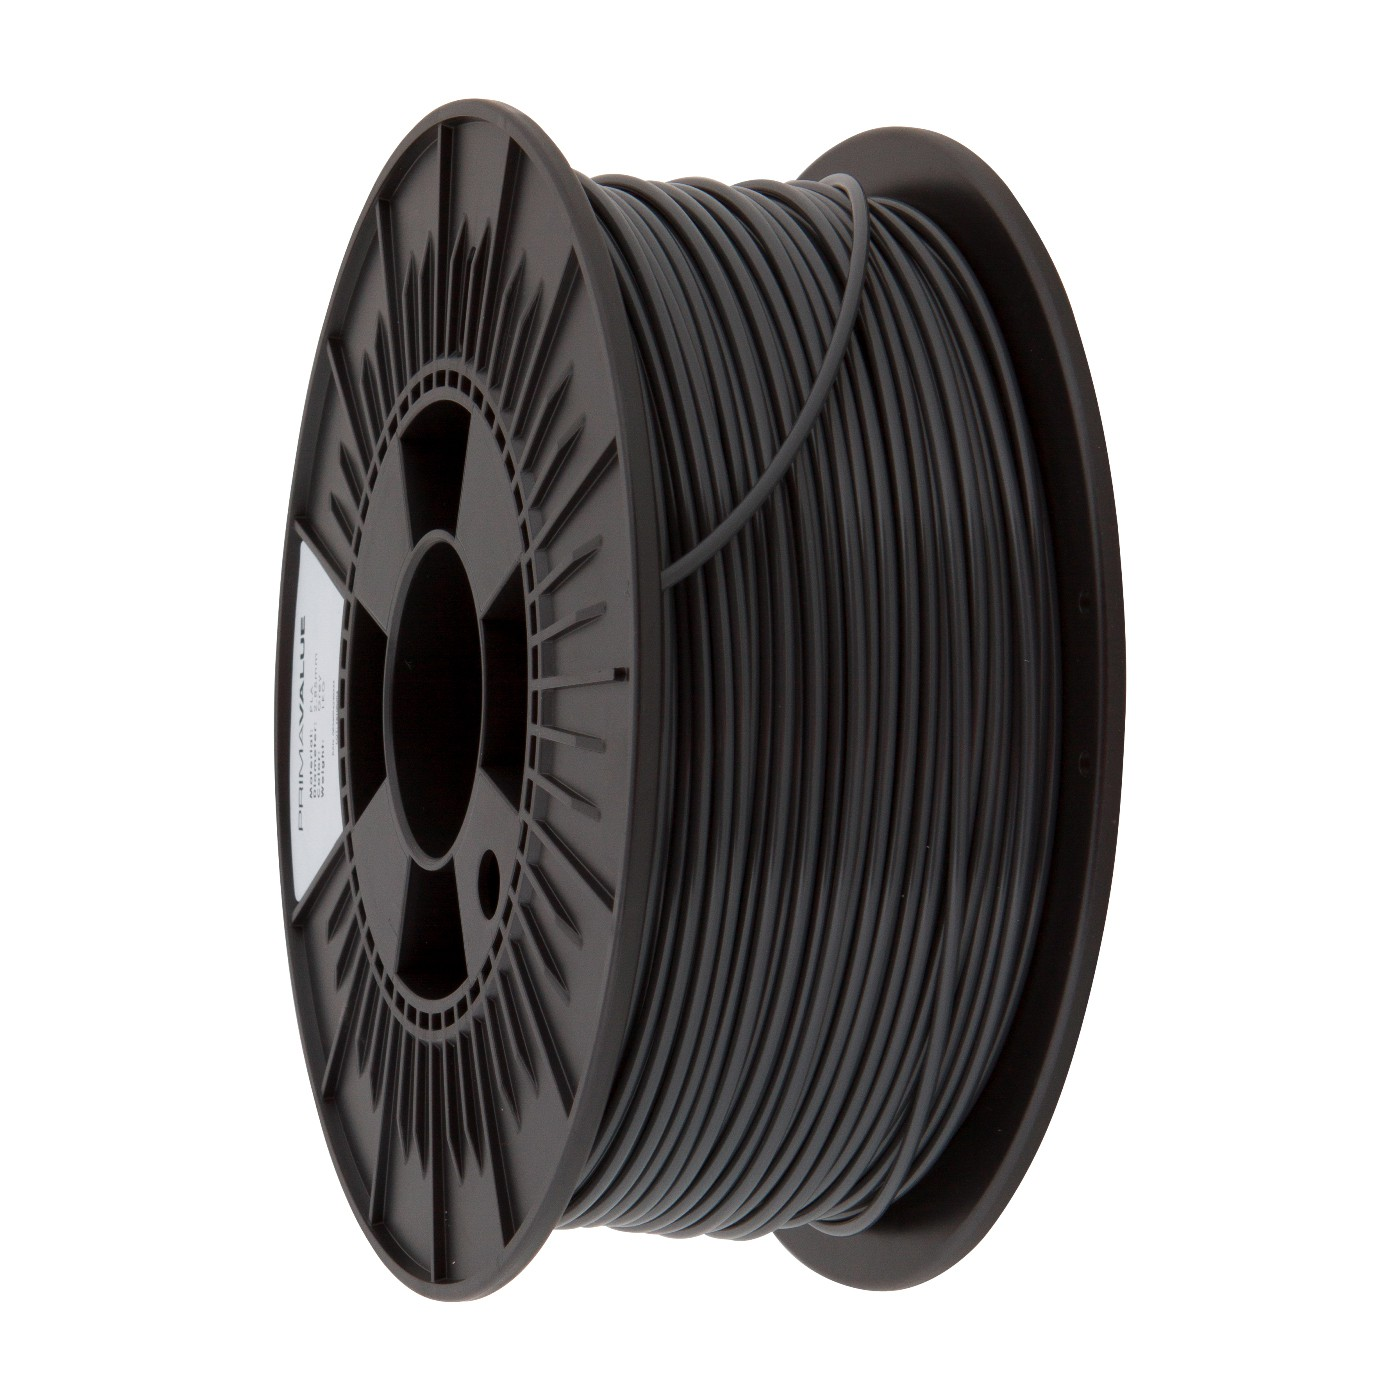 PrimaValue ABS Filament - 1.75mm - 1 kg spool - Mörkgrå